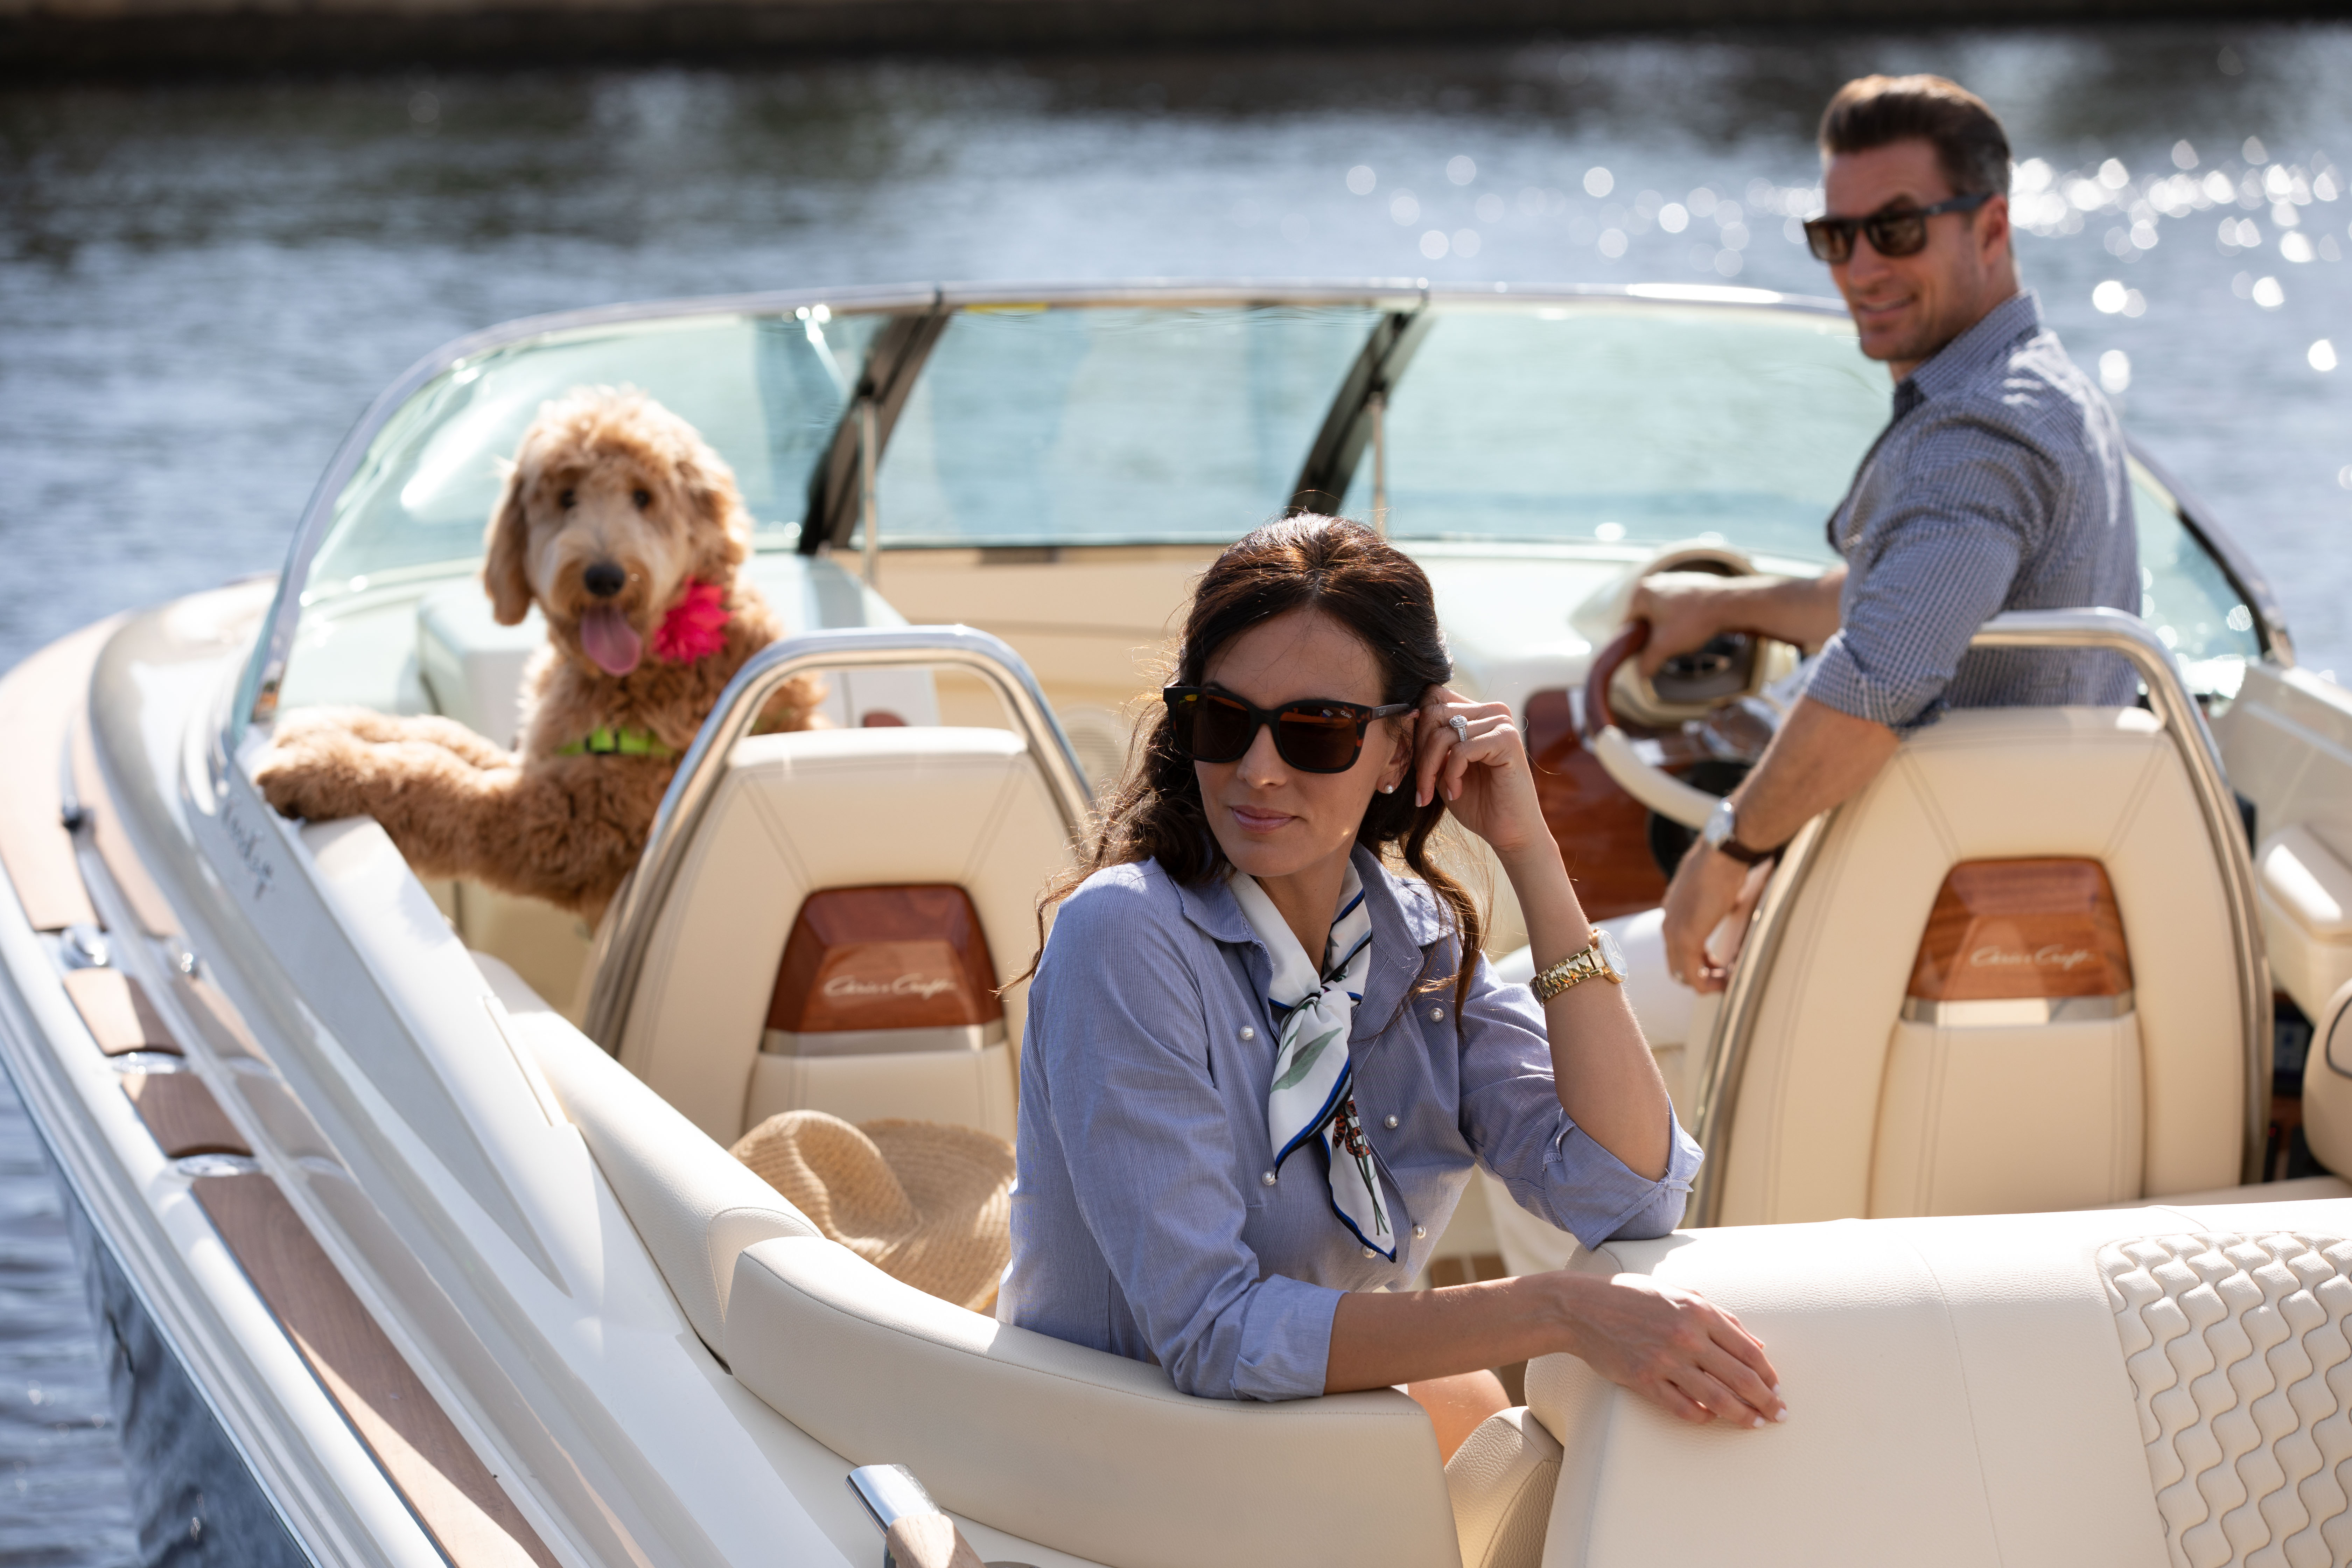 Family on boat with dog in Florida